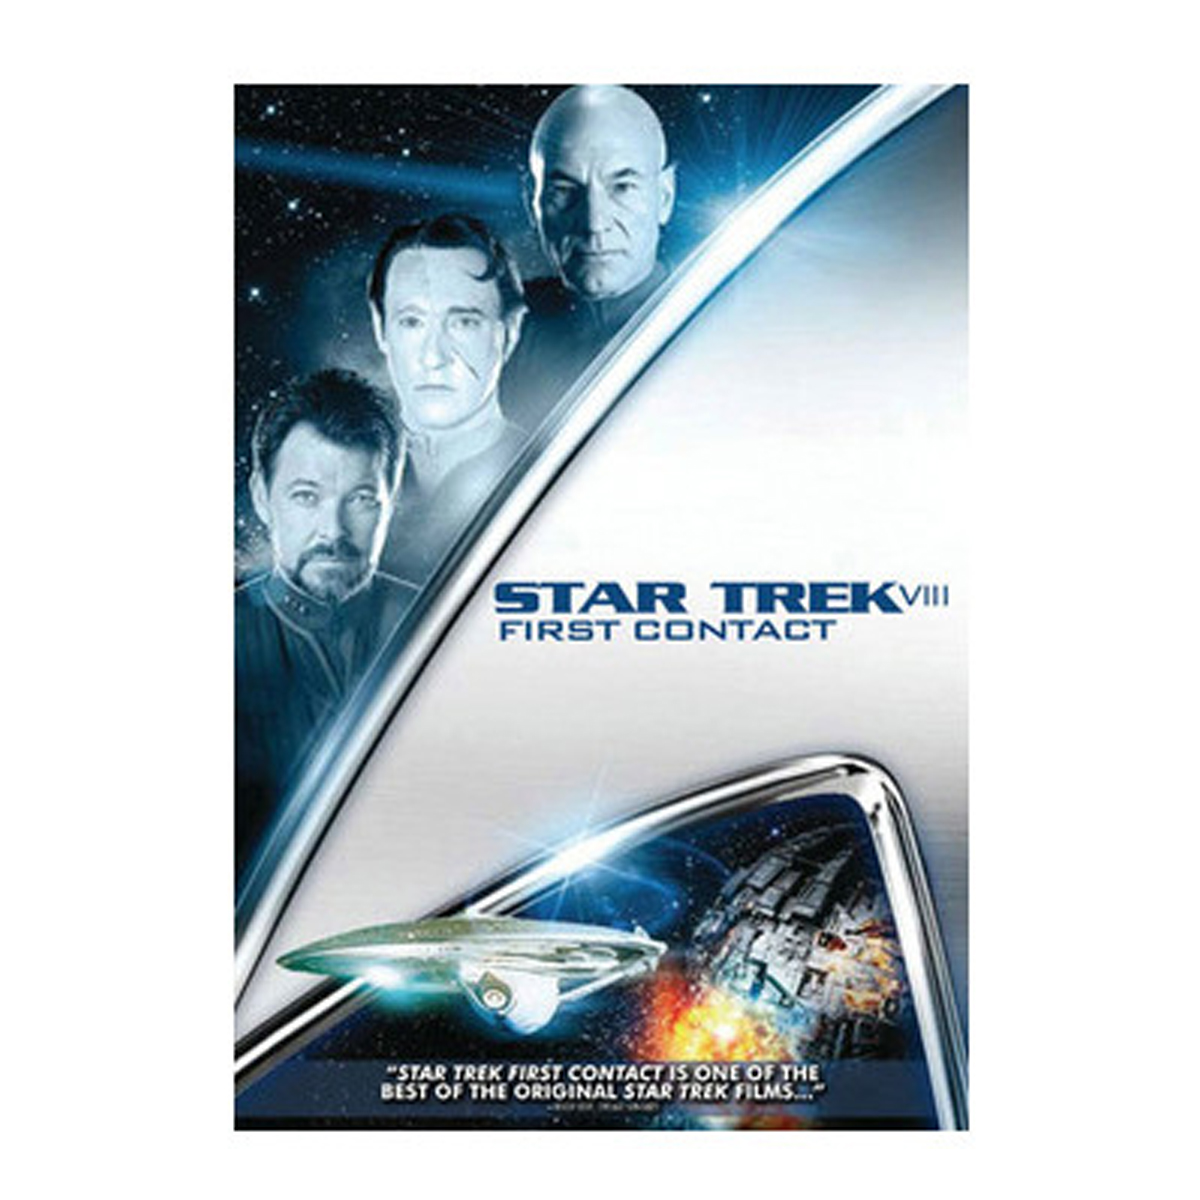 Star Trek VIII: First Contact DVD